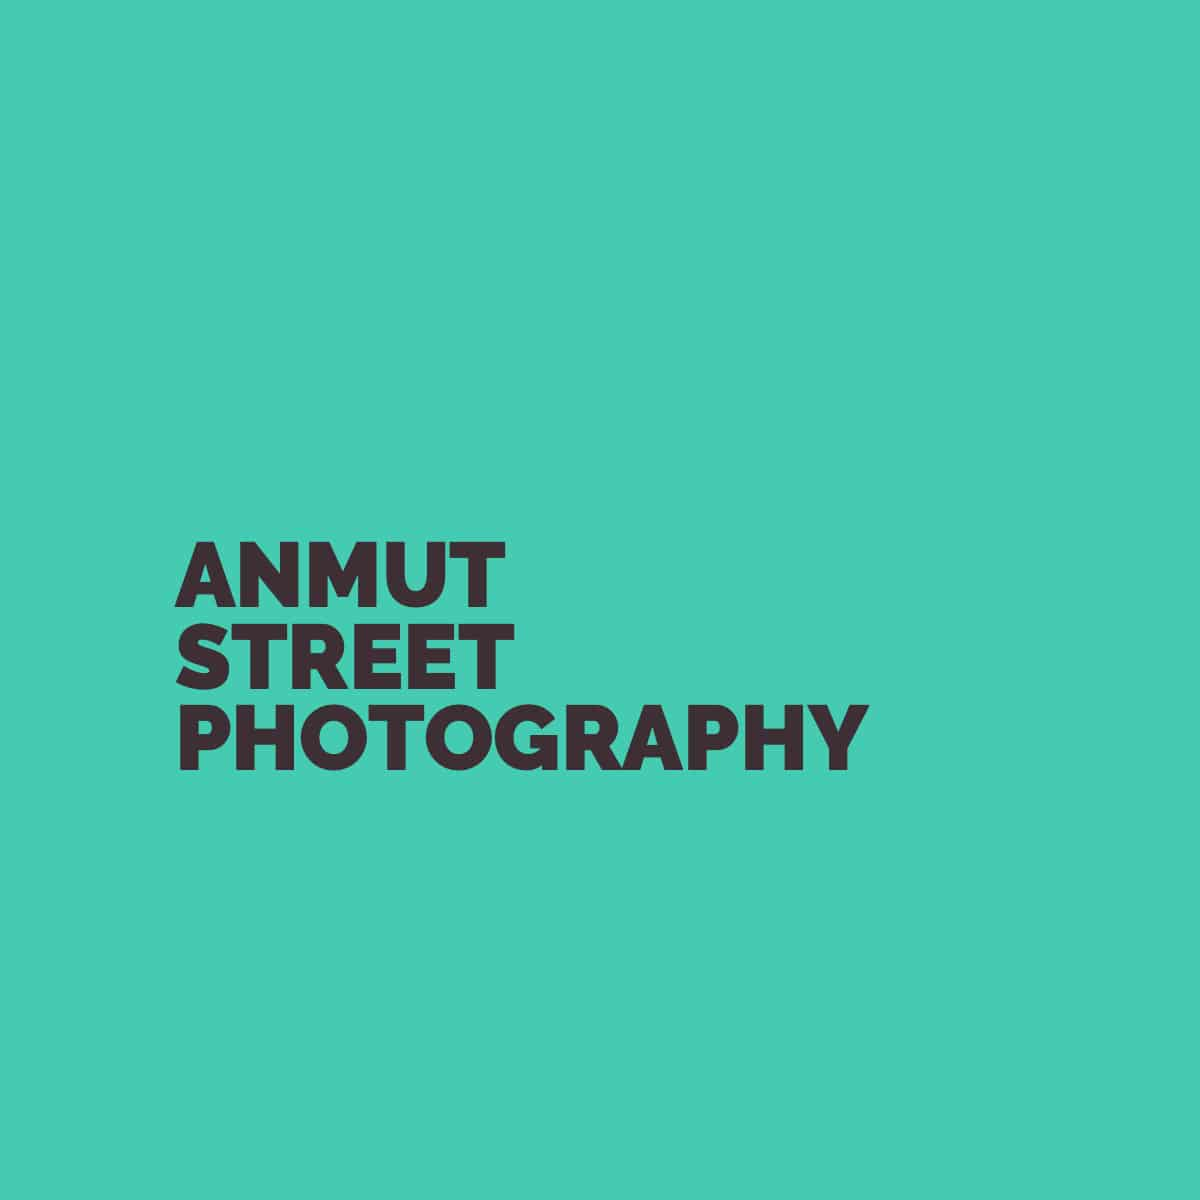 Anmut Street Photography